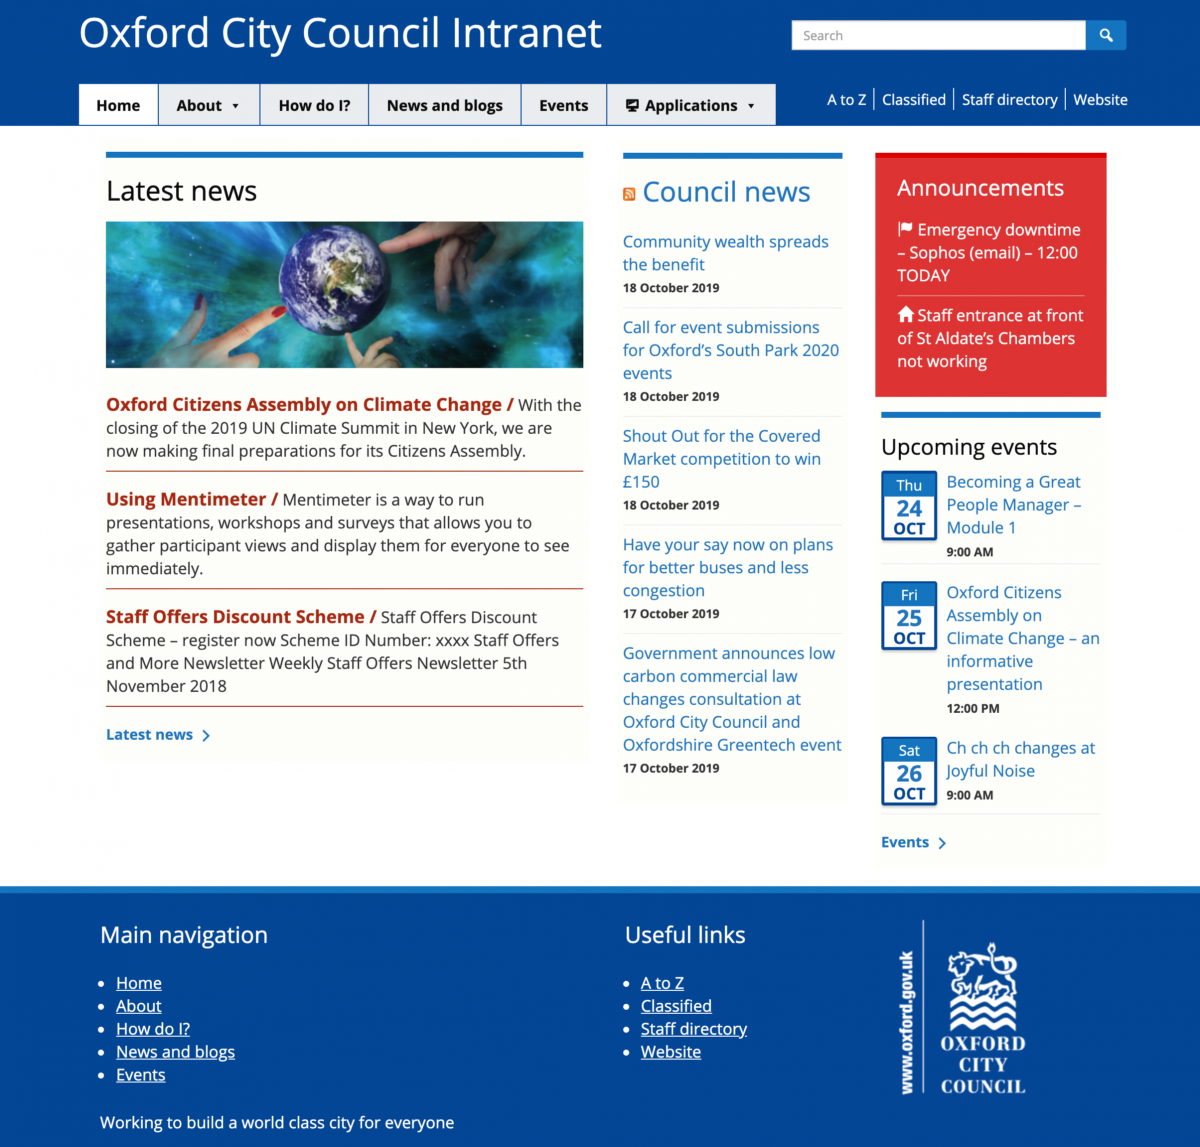 Oxford City Council Intranet